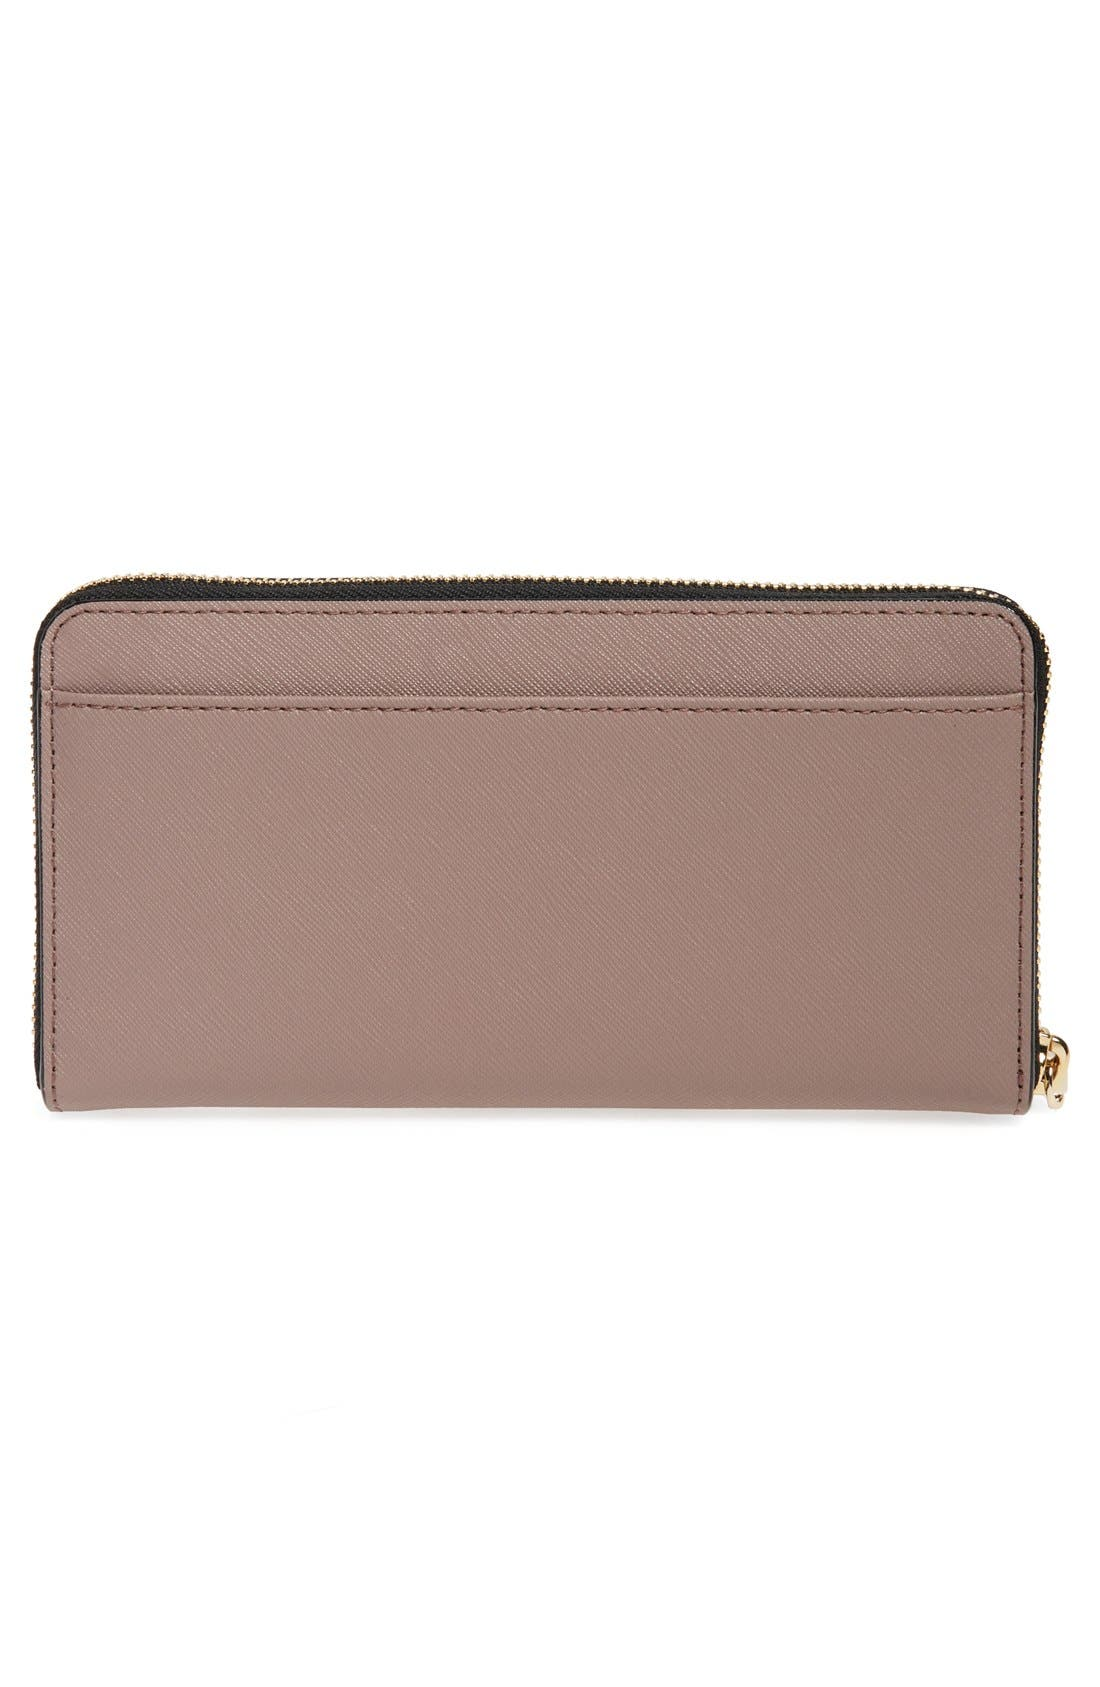 'cameron street - lacey' leather wallet,                             Alternate thumbnail 71, color,